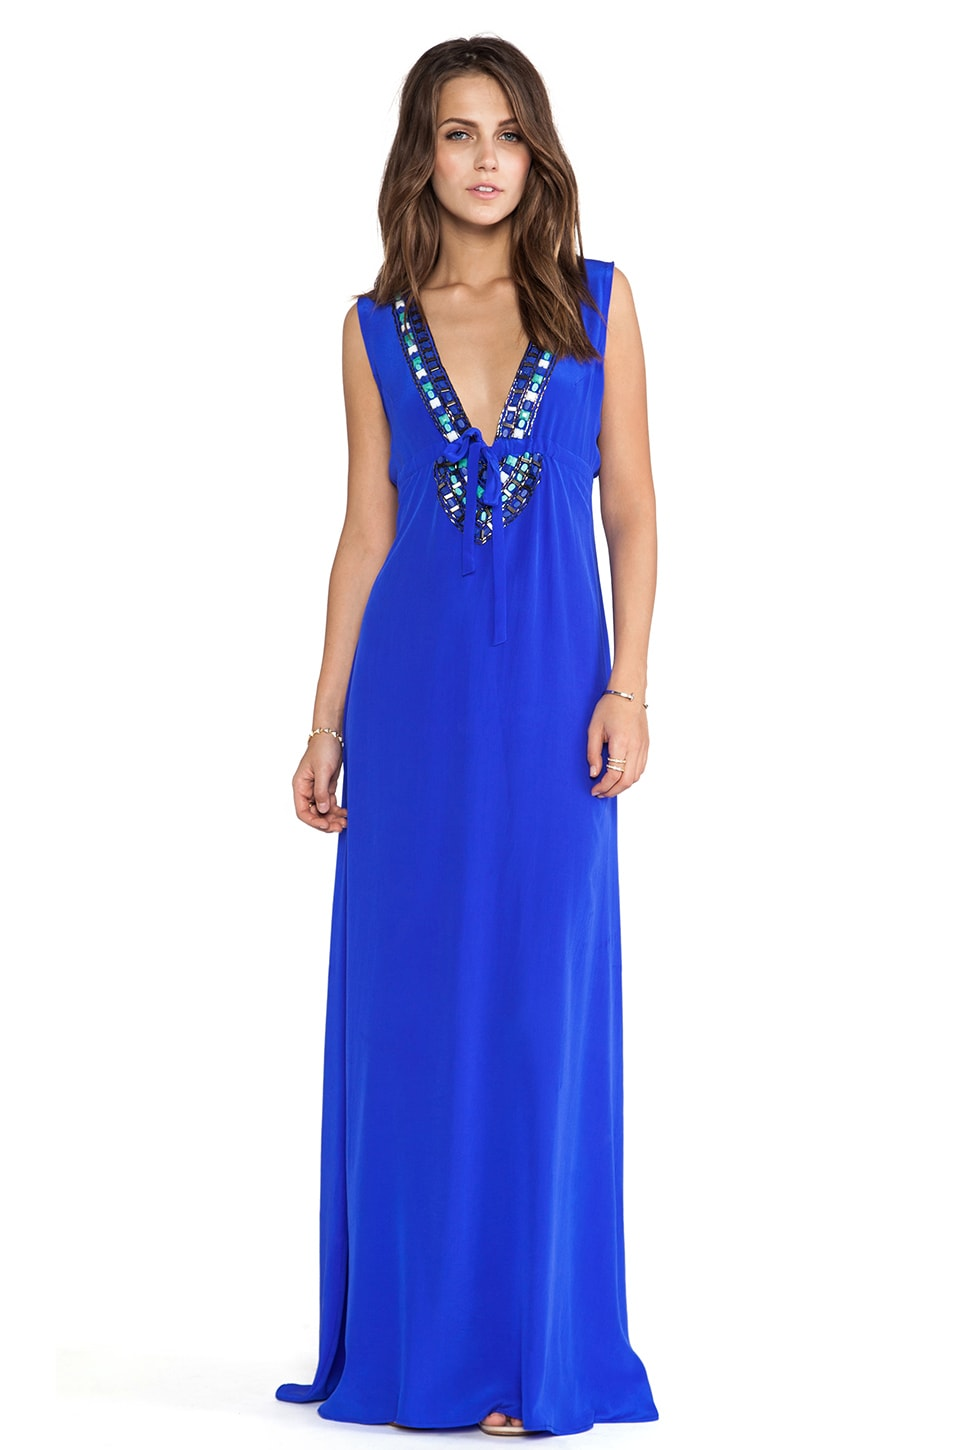 Karina Grimaldi Skyler Beaded Maxi Dress in Cobalt